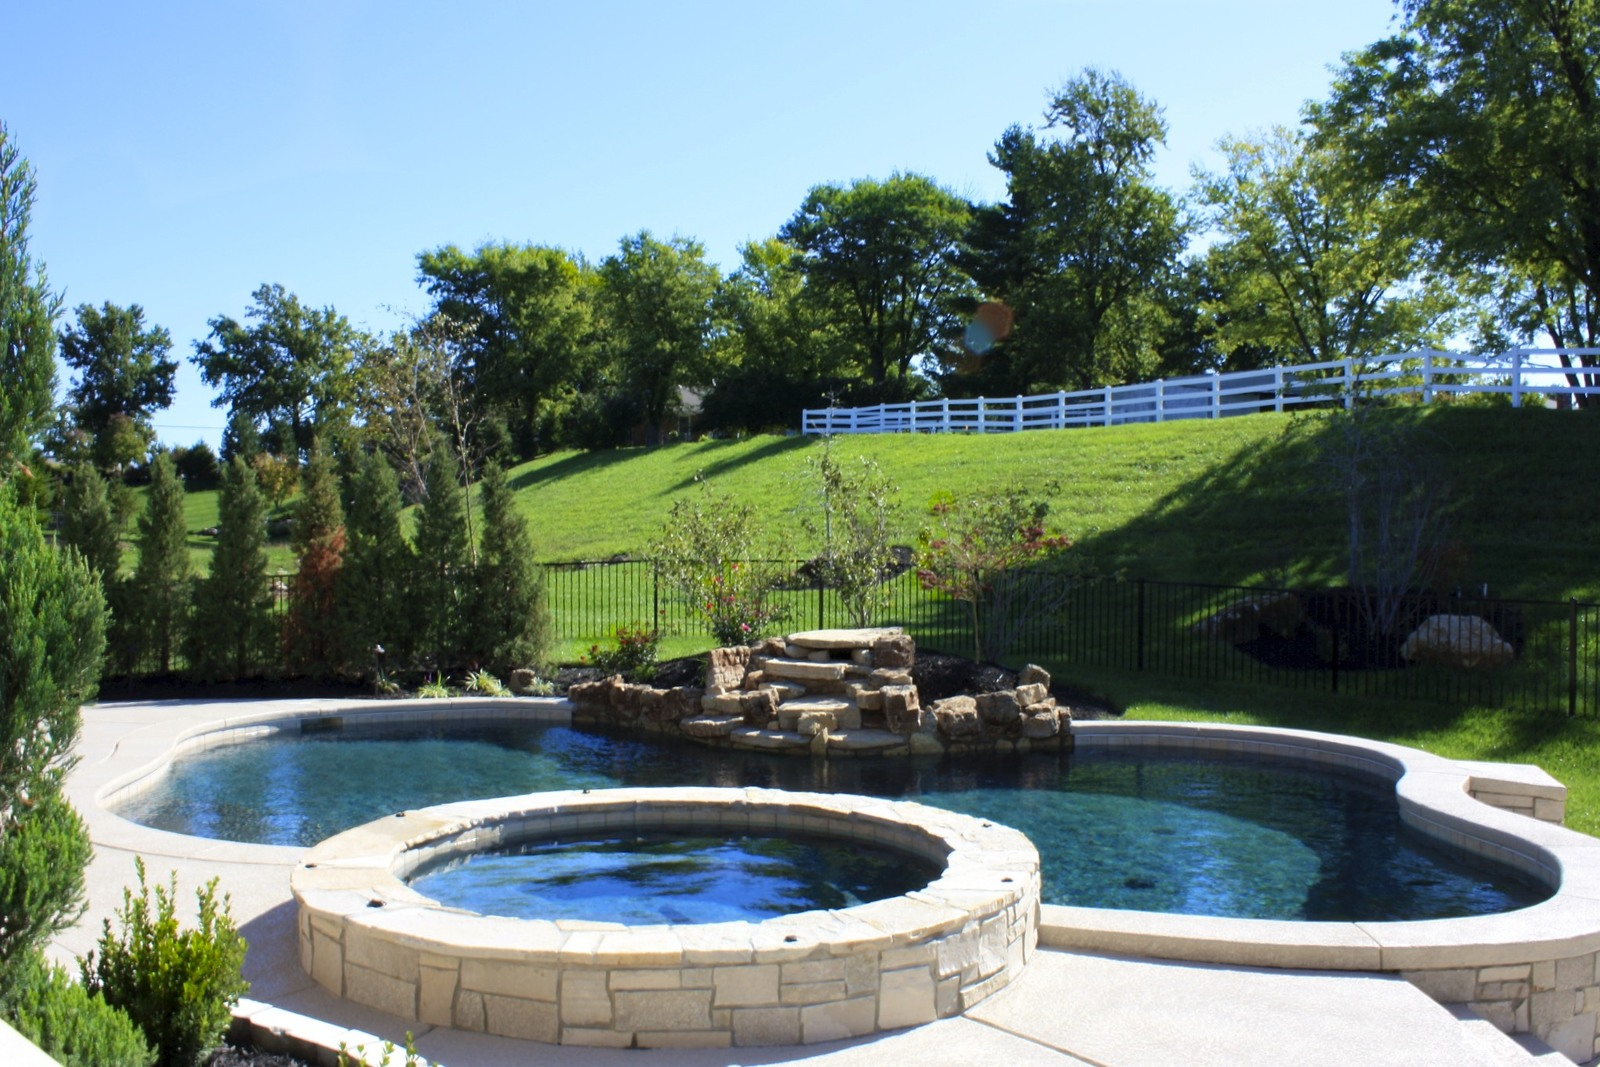 Refreshing chesterfield pool baker pool construction for Pool contractors